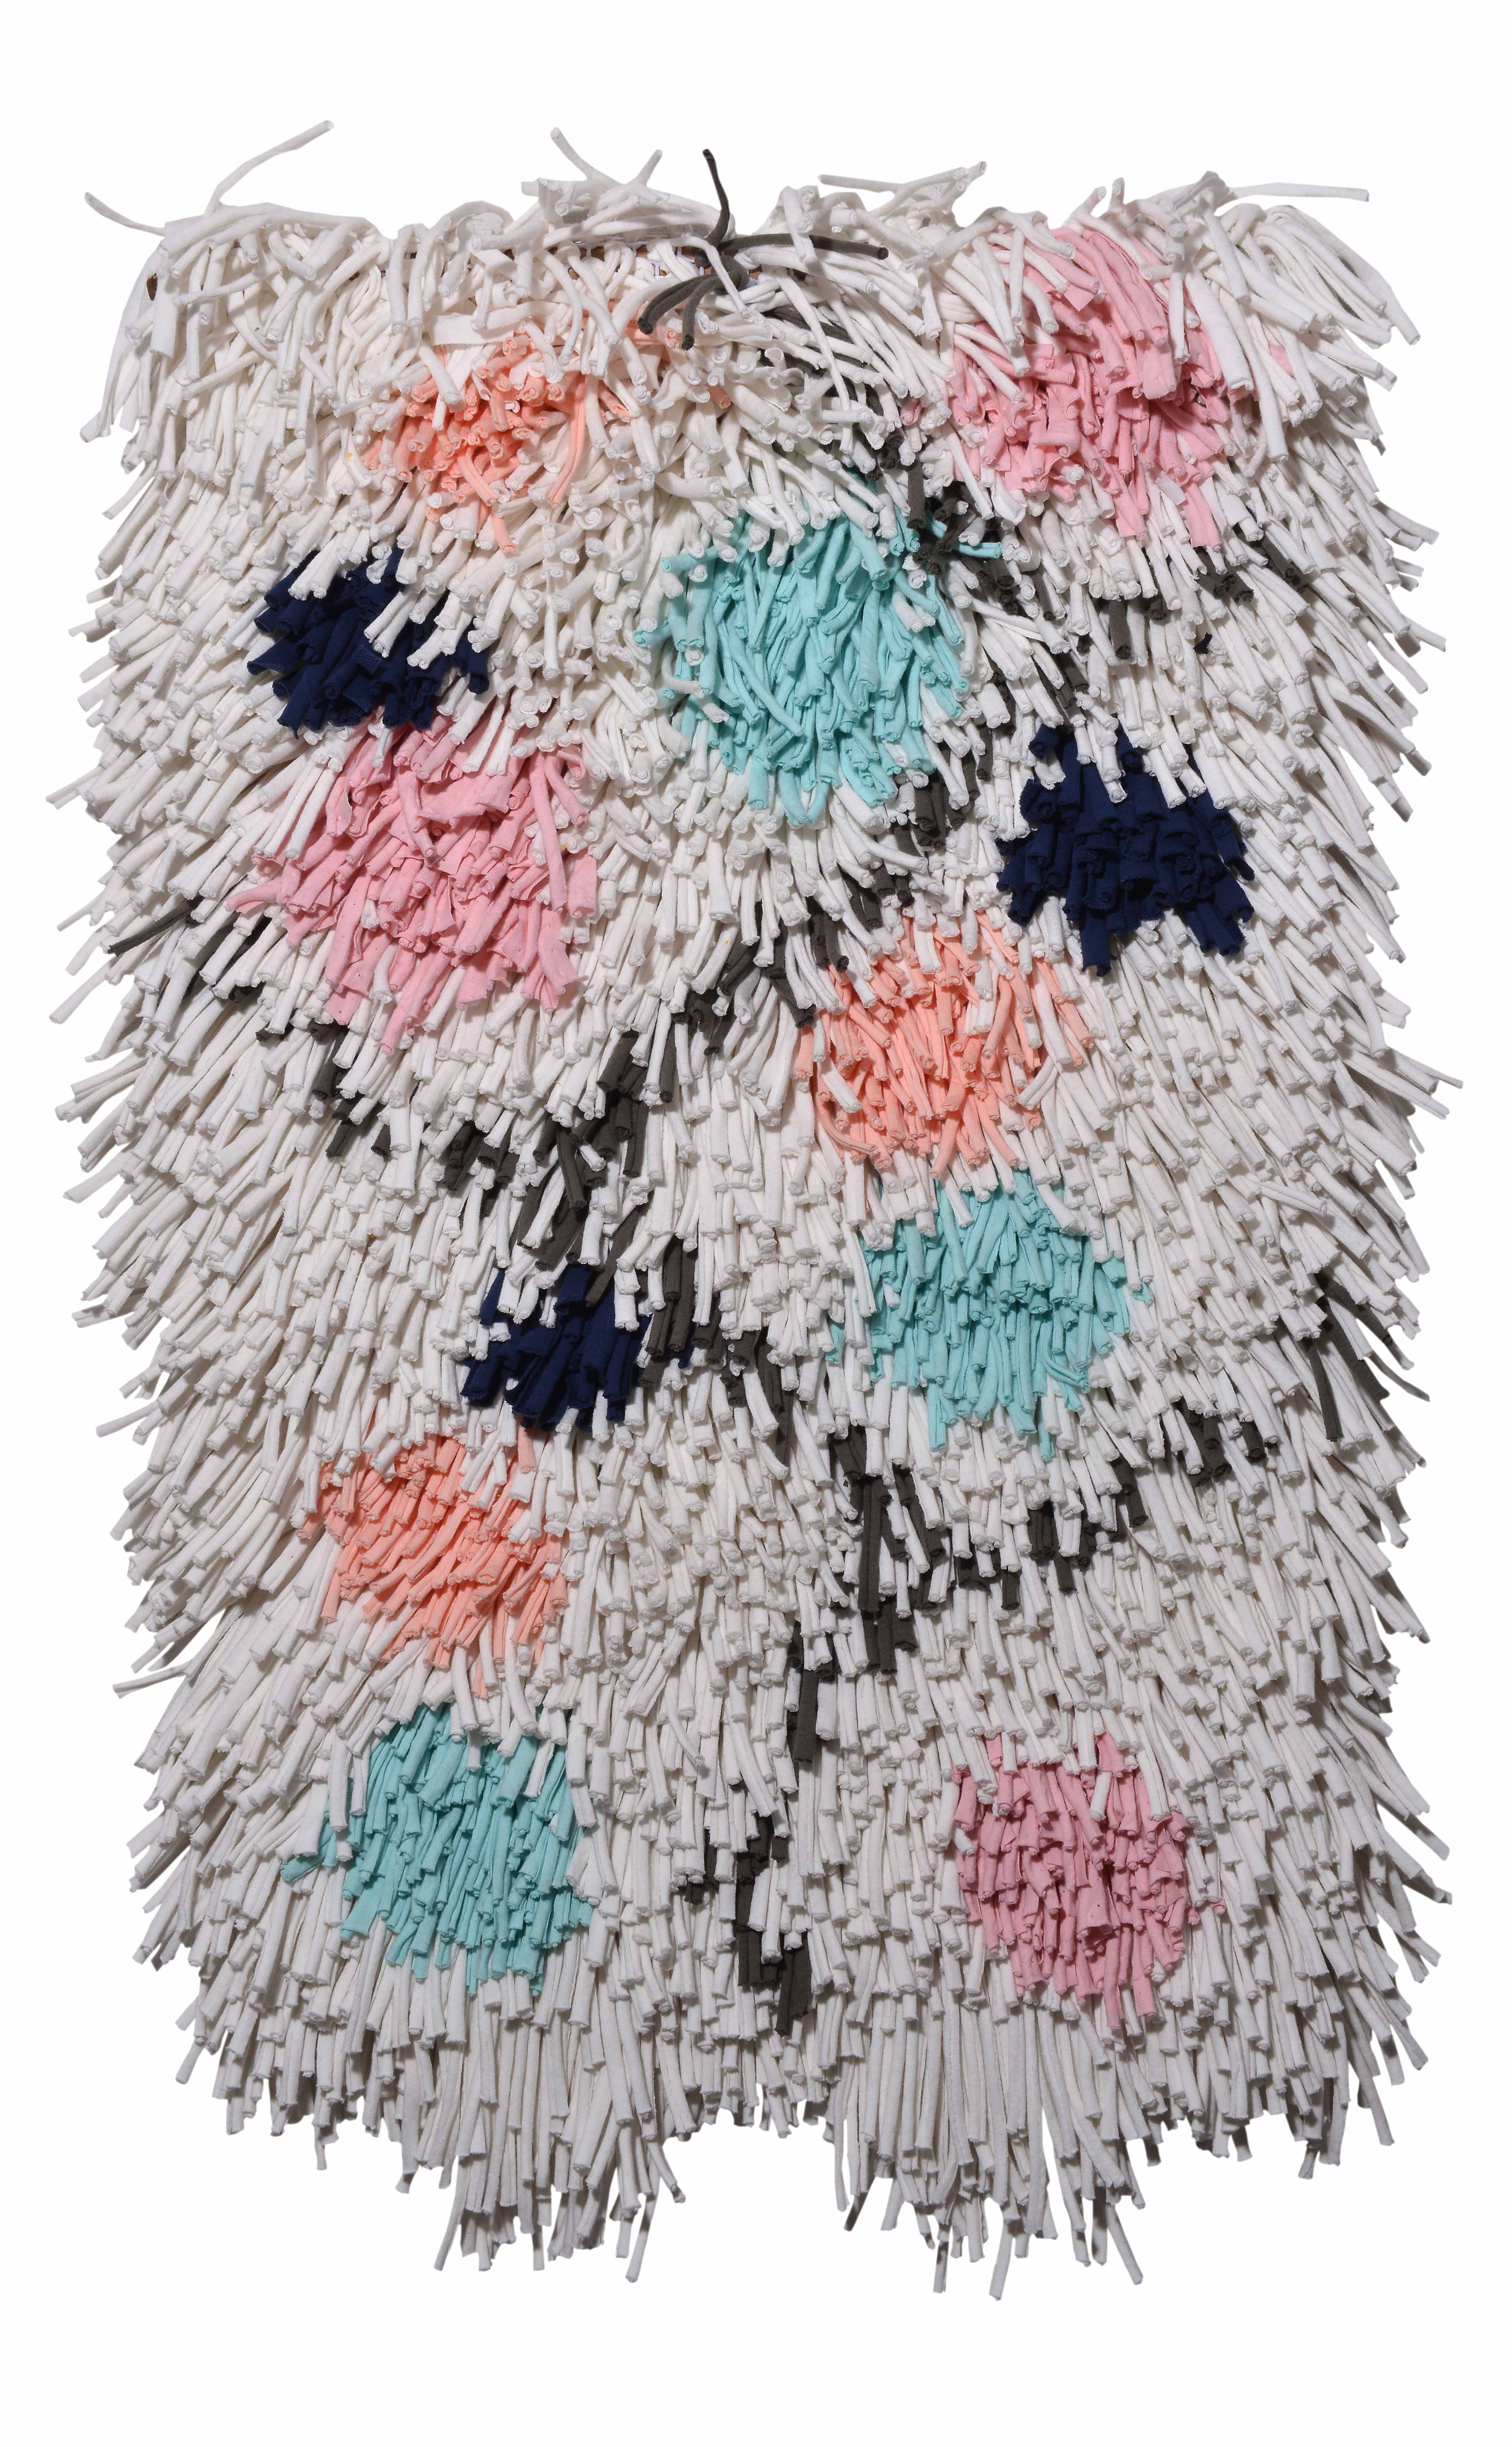 'Wish Balls' throw rug by Ragmate is made using the same repurposed fabric texture as the original Ragamuf chair cover. | Image courtesy of Ragmate.